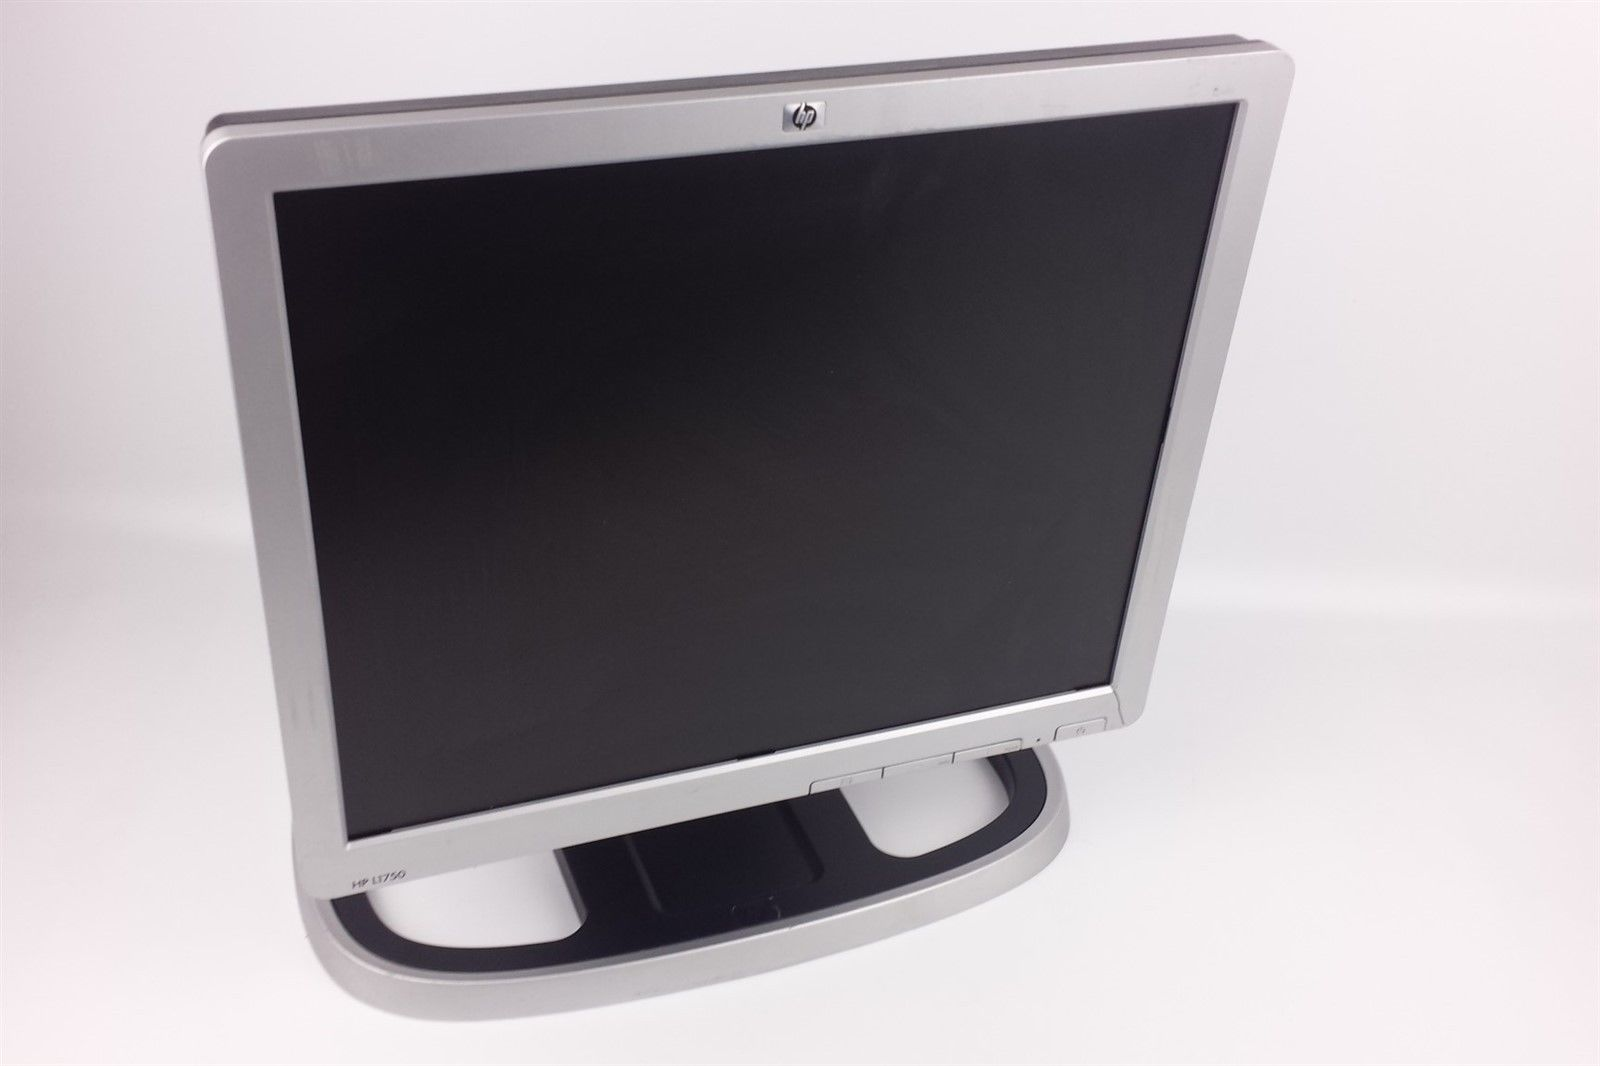 "HP L1750 Flat Screen LCD Computer Monitor 17"" GF904A w/ Hard Stand & Cables"